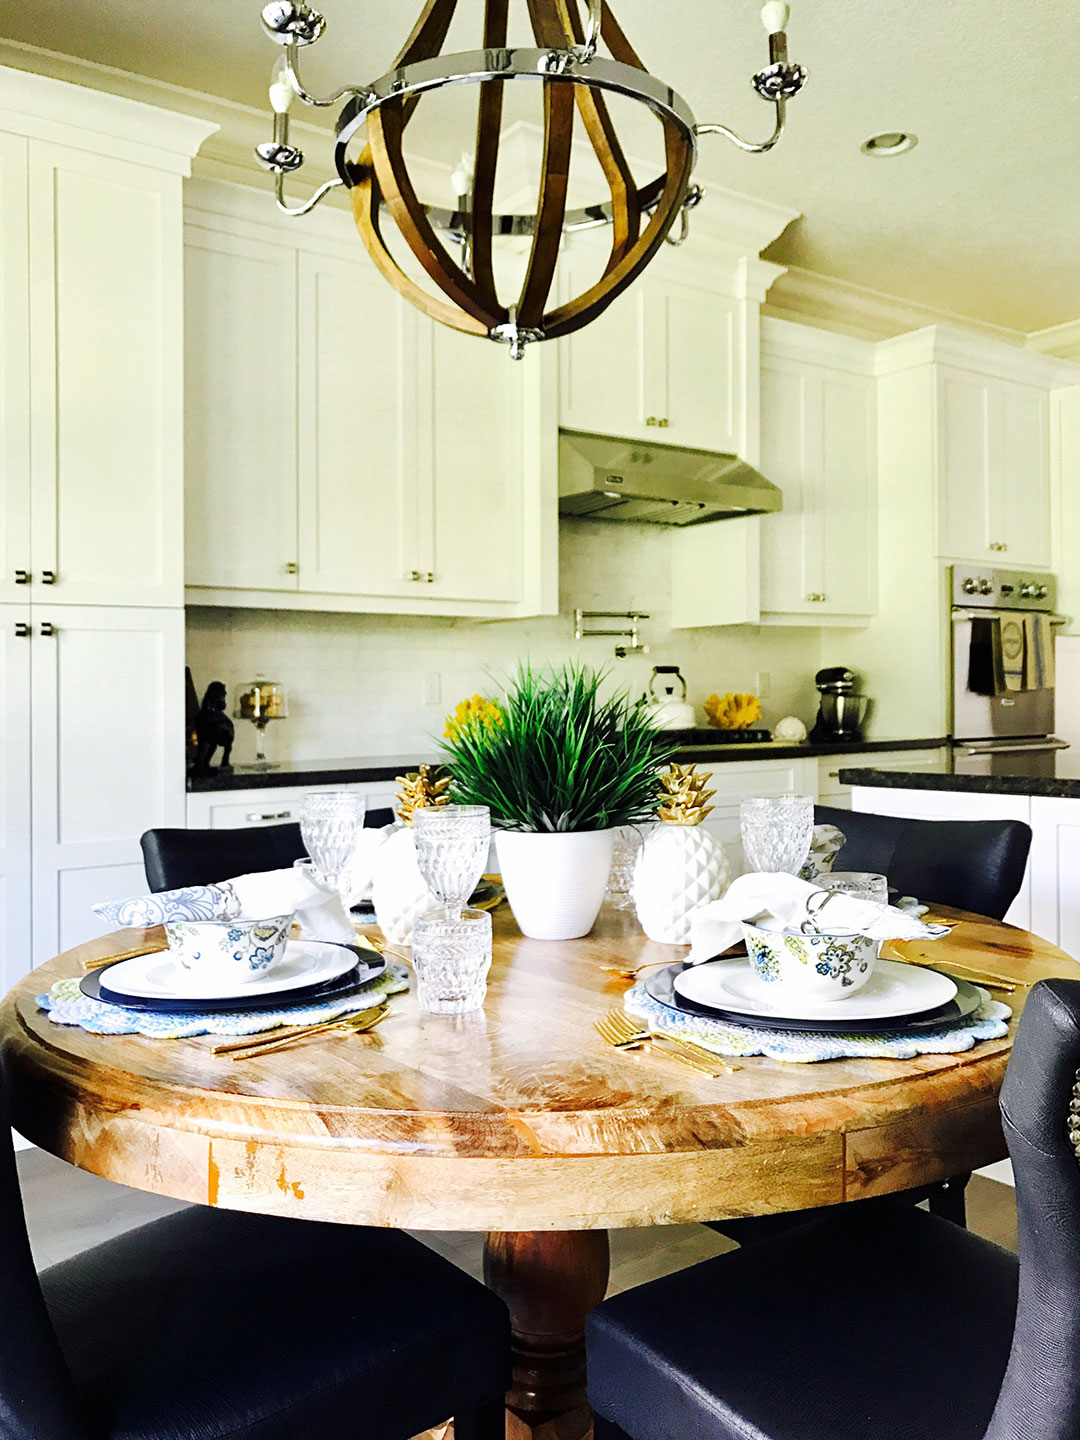 A FLORIDA HOME : THE WHITE KITCHEN